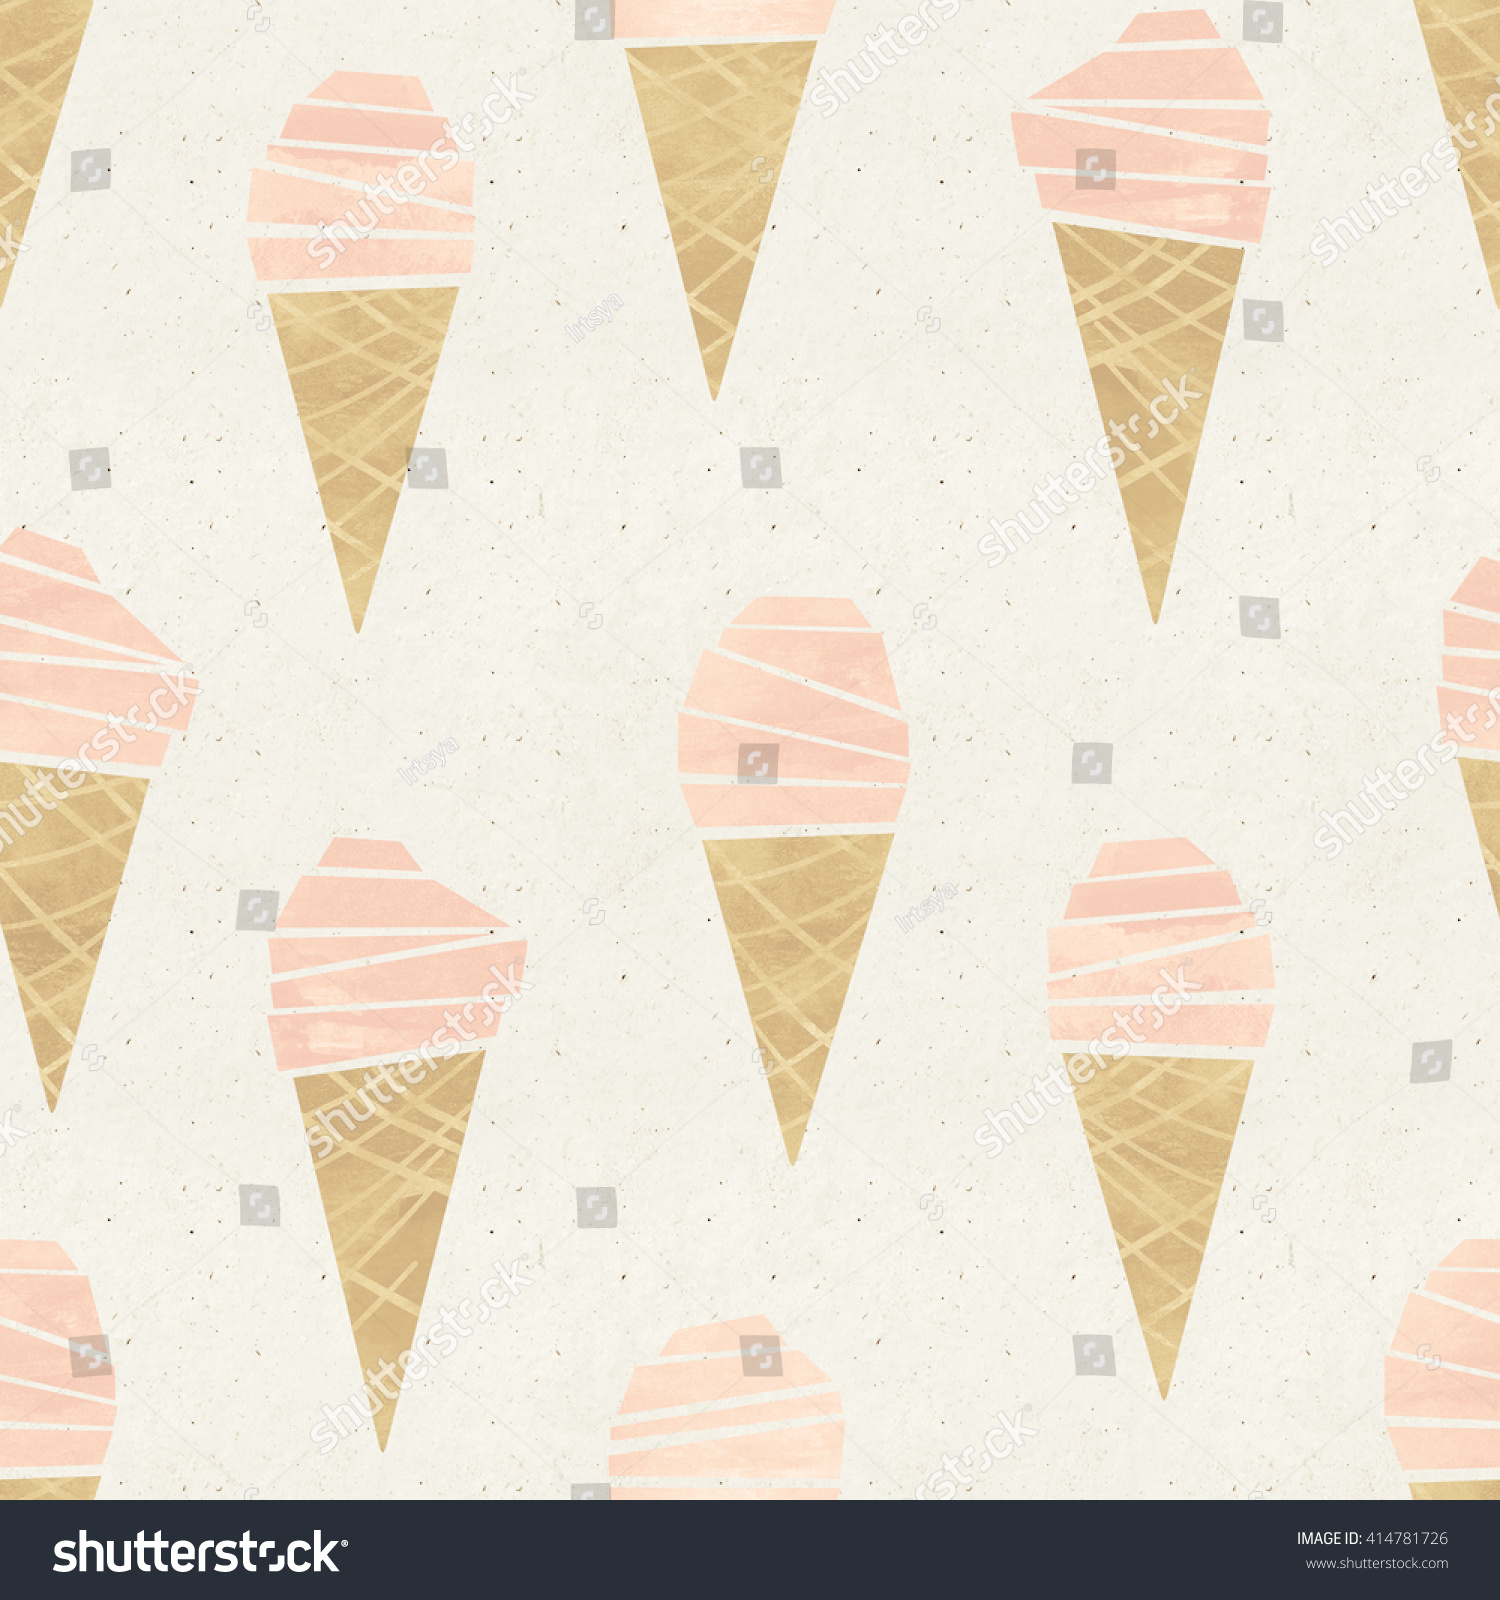 Seamless Pattern With Hand Drawn Watercolor Ice Cream: Seamless Icecream Come Pattern On Paper Stock Illustration